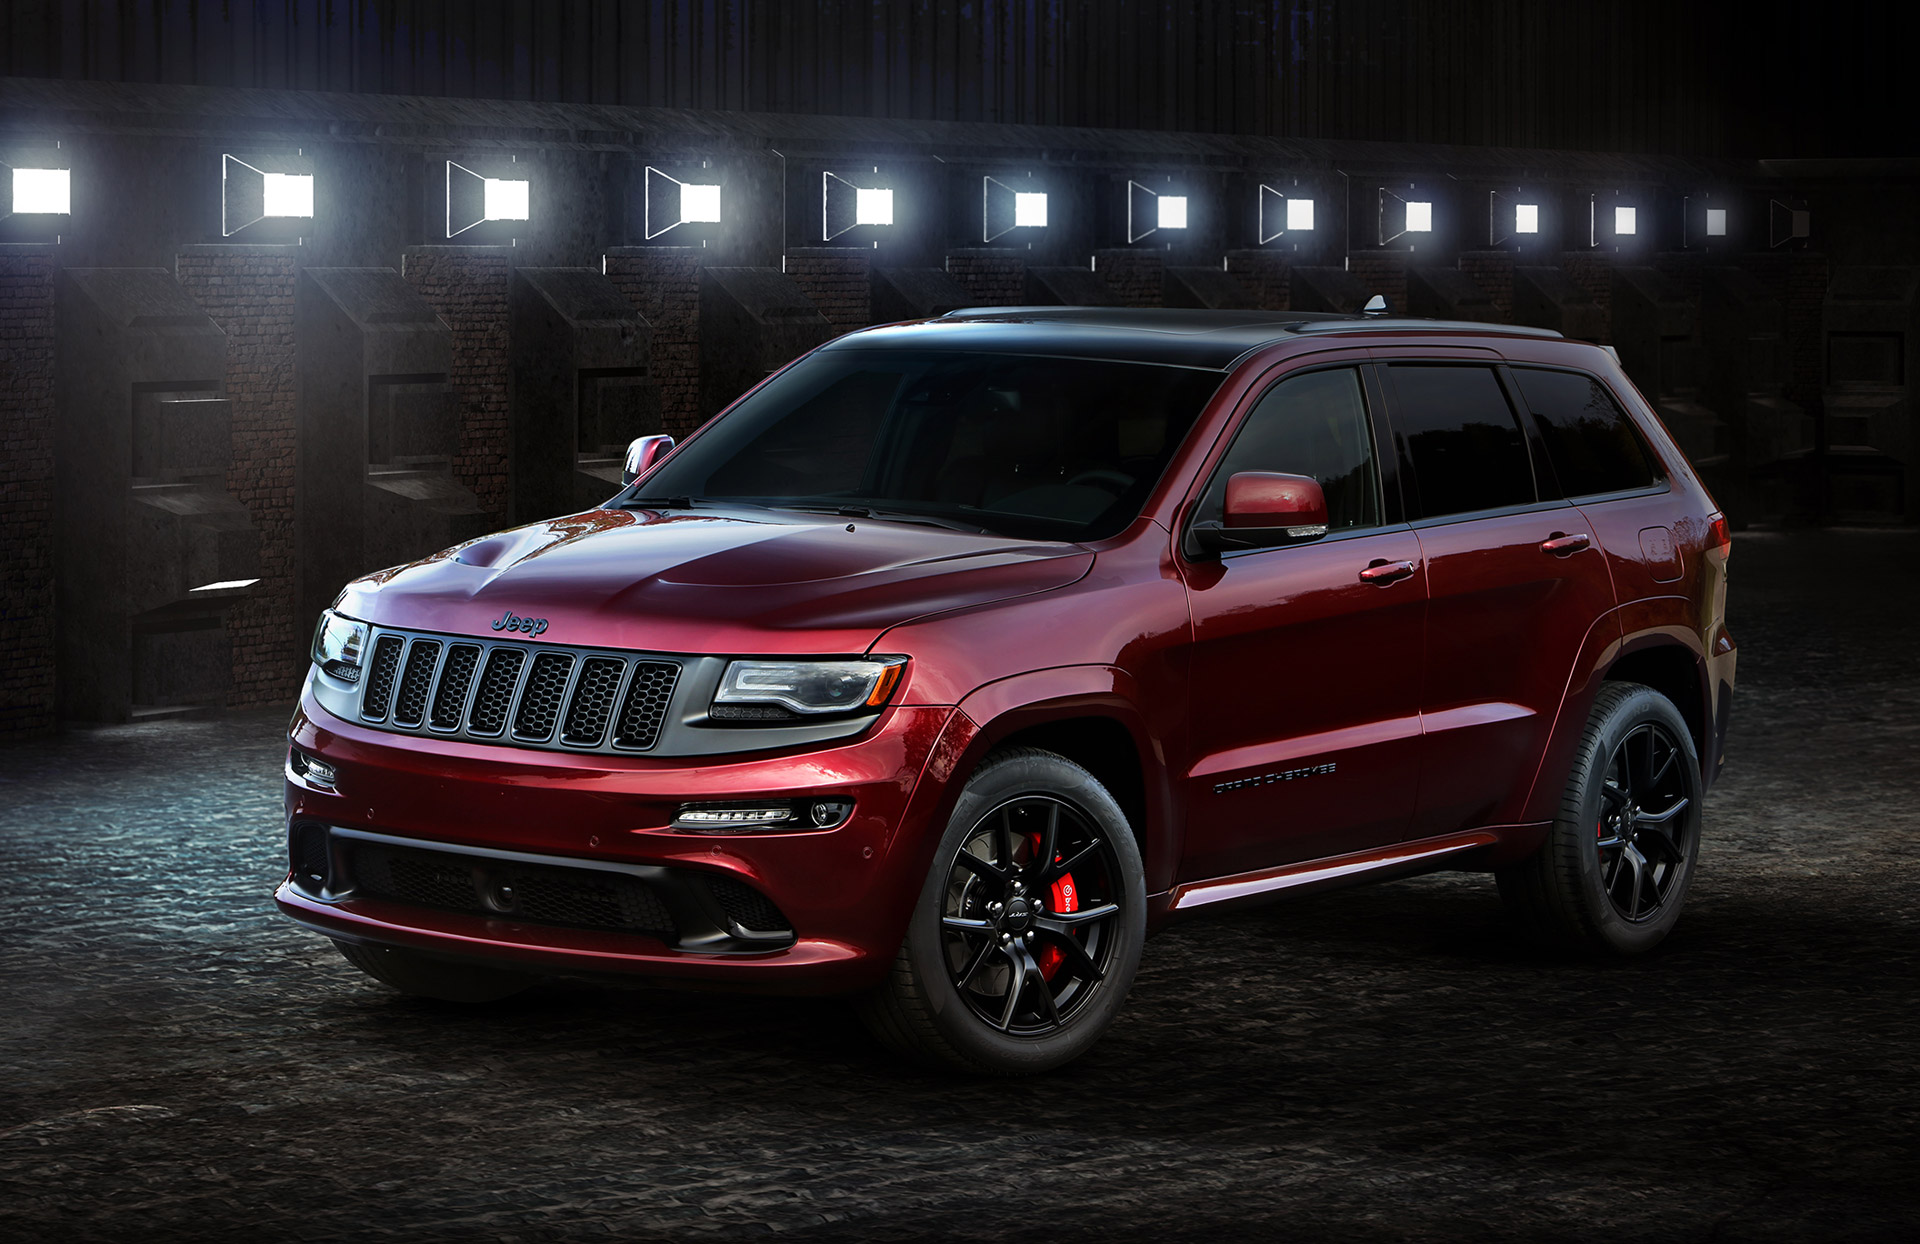 2016 Cadillac Crossover >> 2016 Jeep Grand Cherokee SRT, Wrangler Special Editions Head To L.A. Auto Show